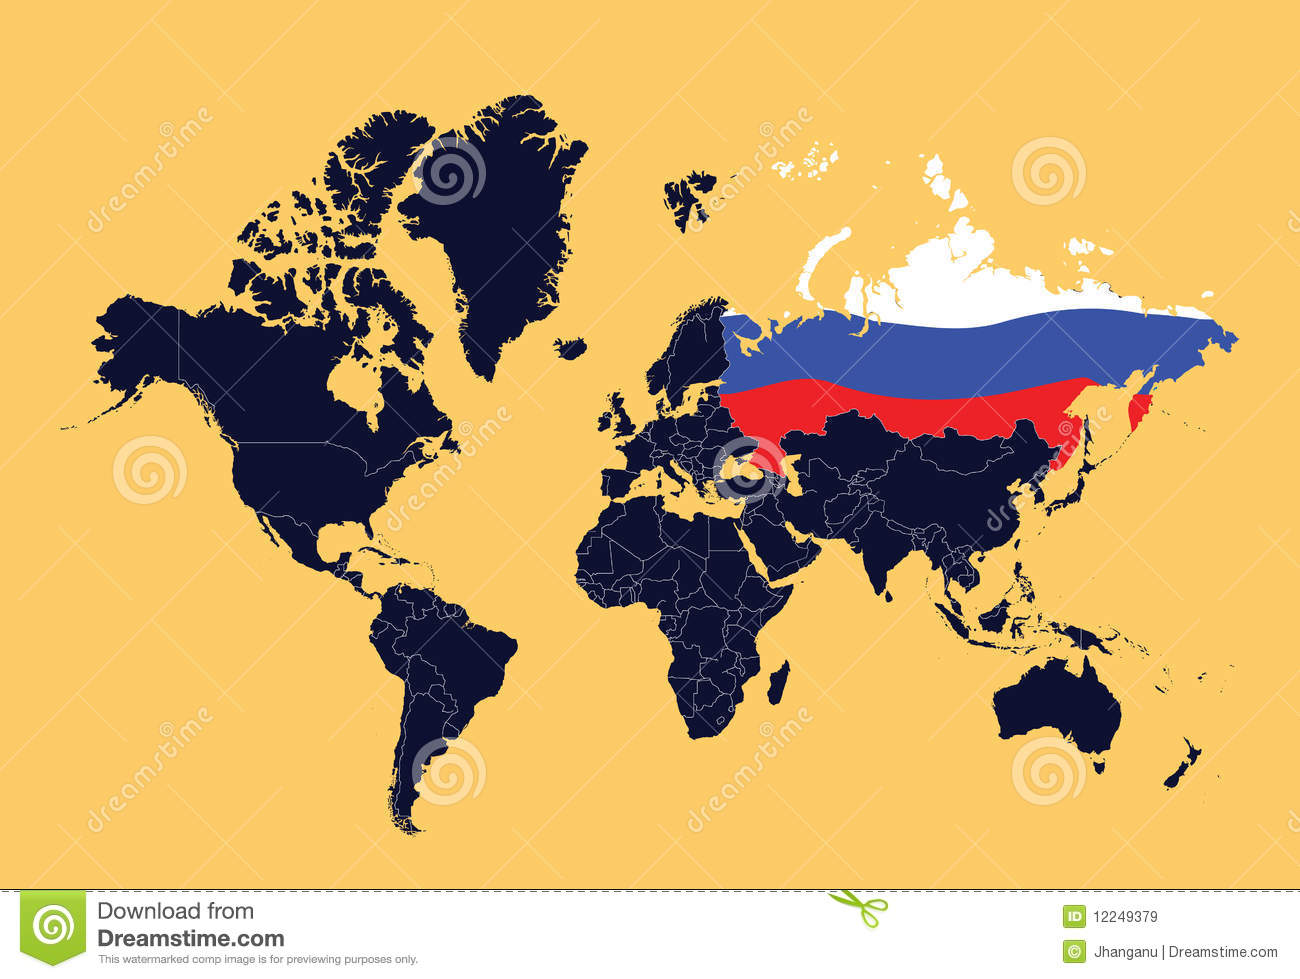 World map showing russian federation stock vector illustration world map showing russian federation gumiabroncs Gallery